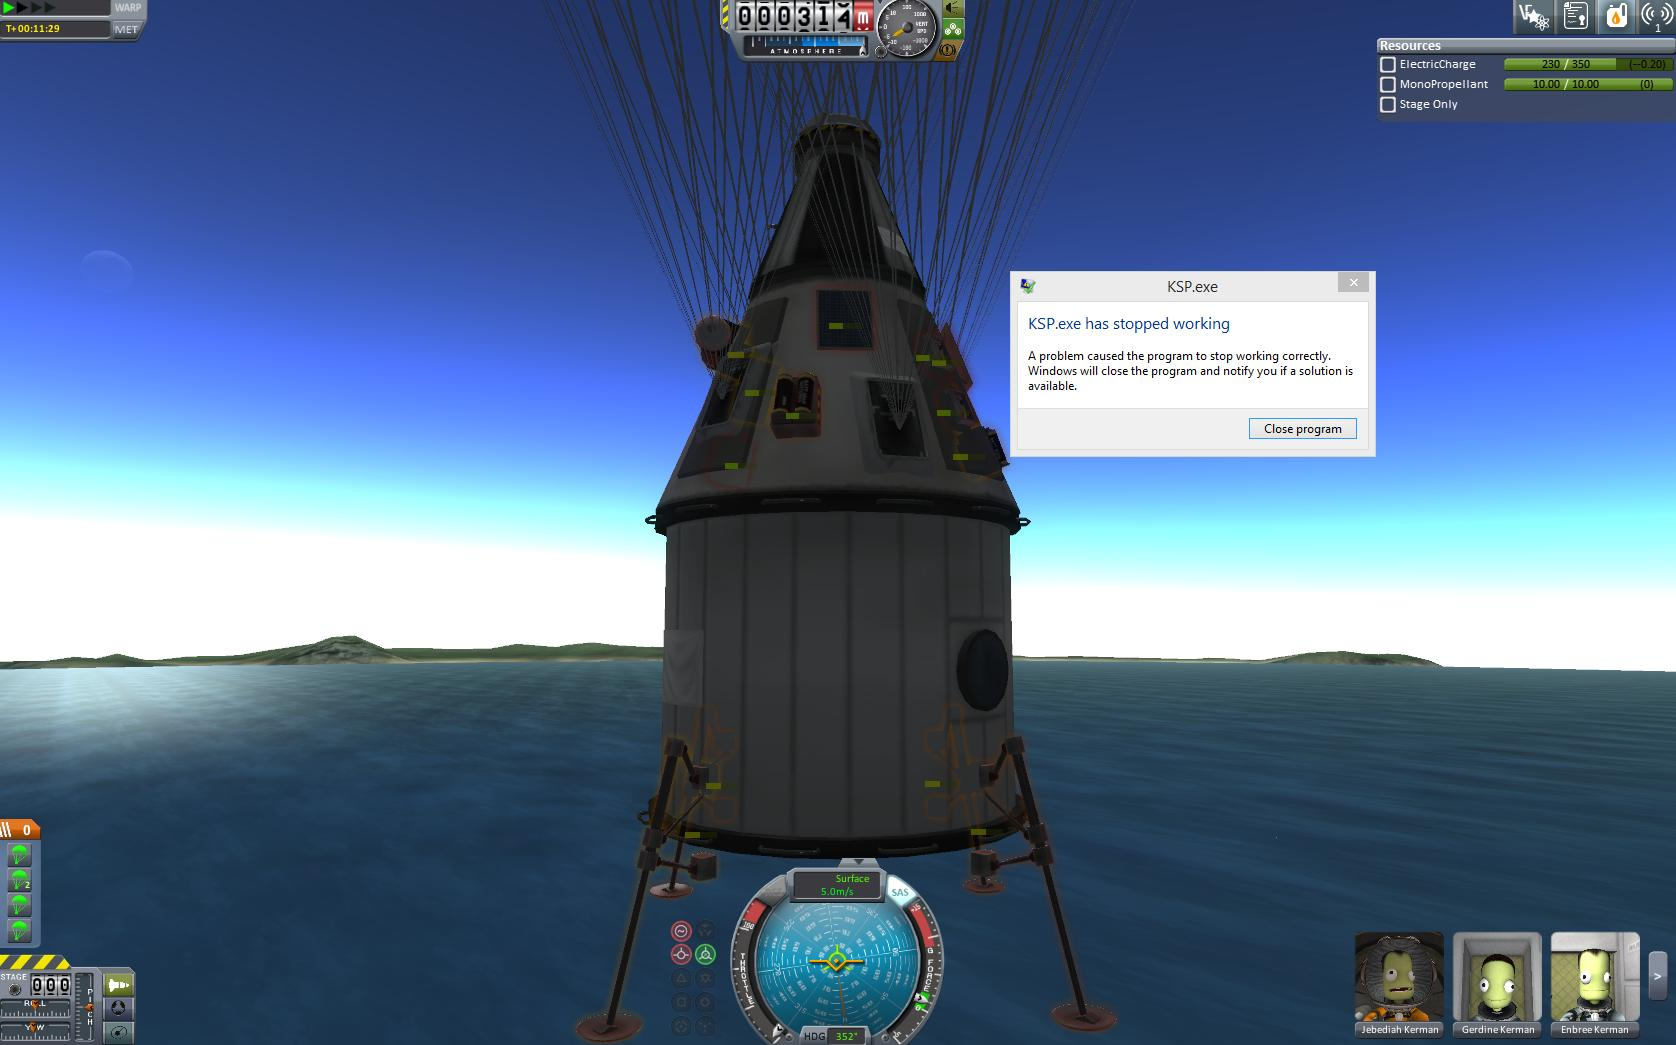 Kerbal Space Program crashes right before landing a craft.